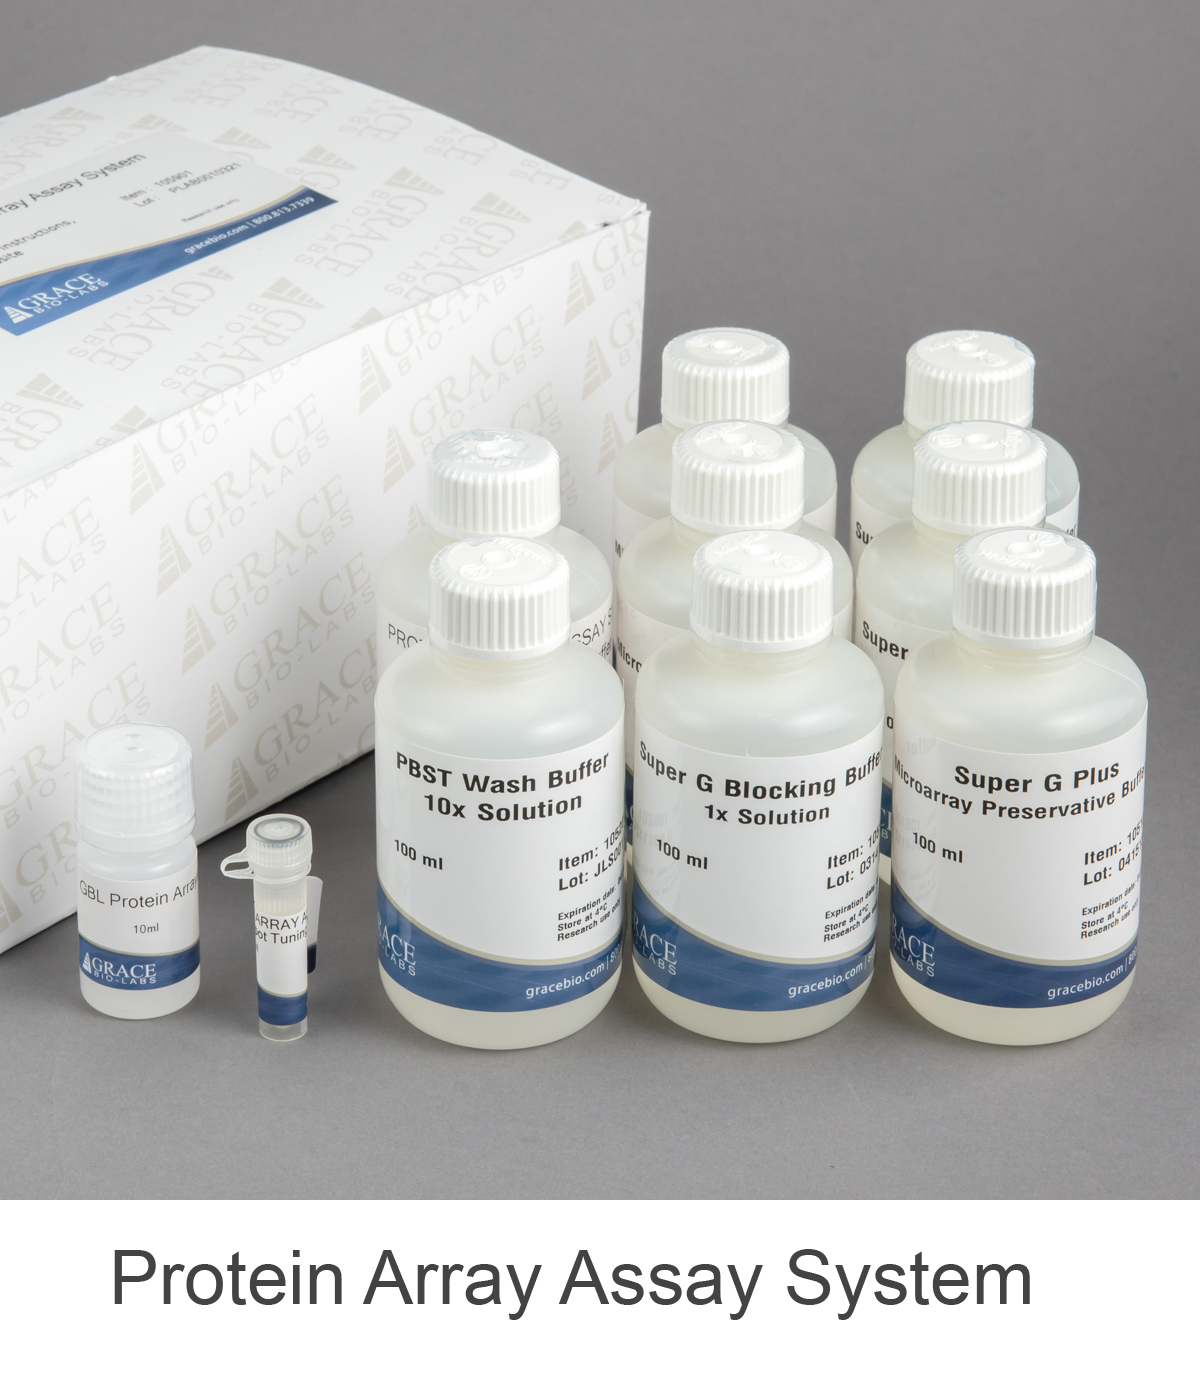 Protein Array Assay System